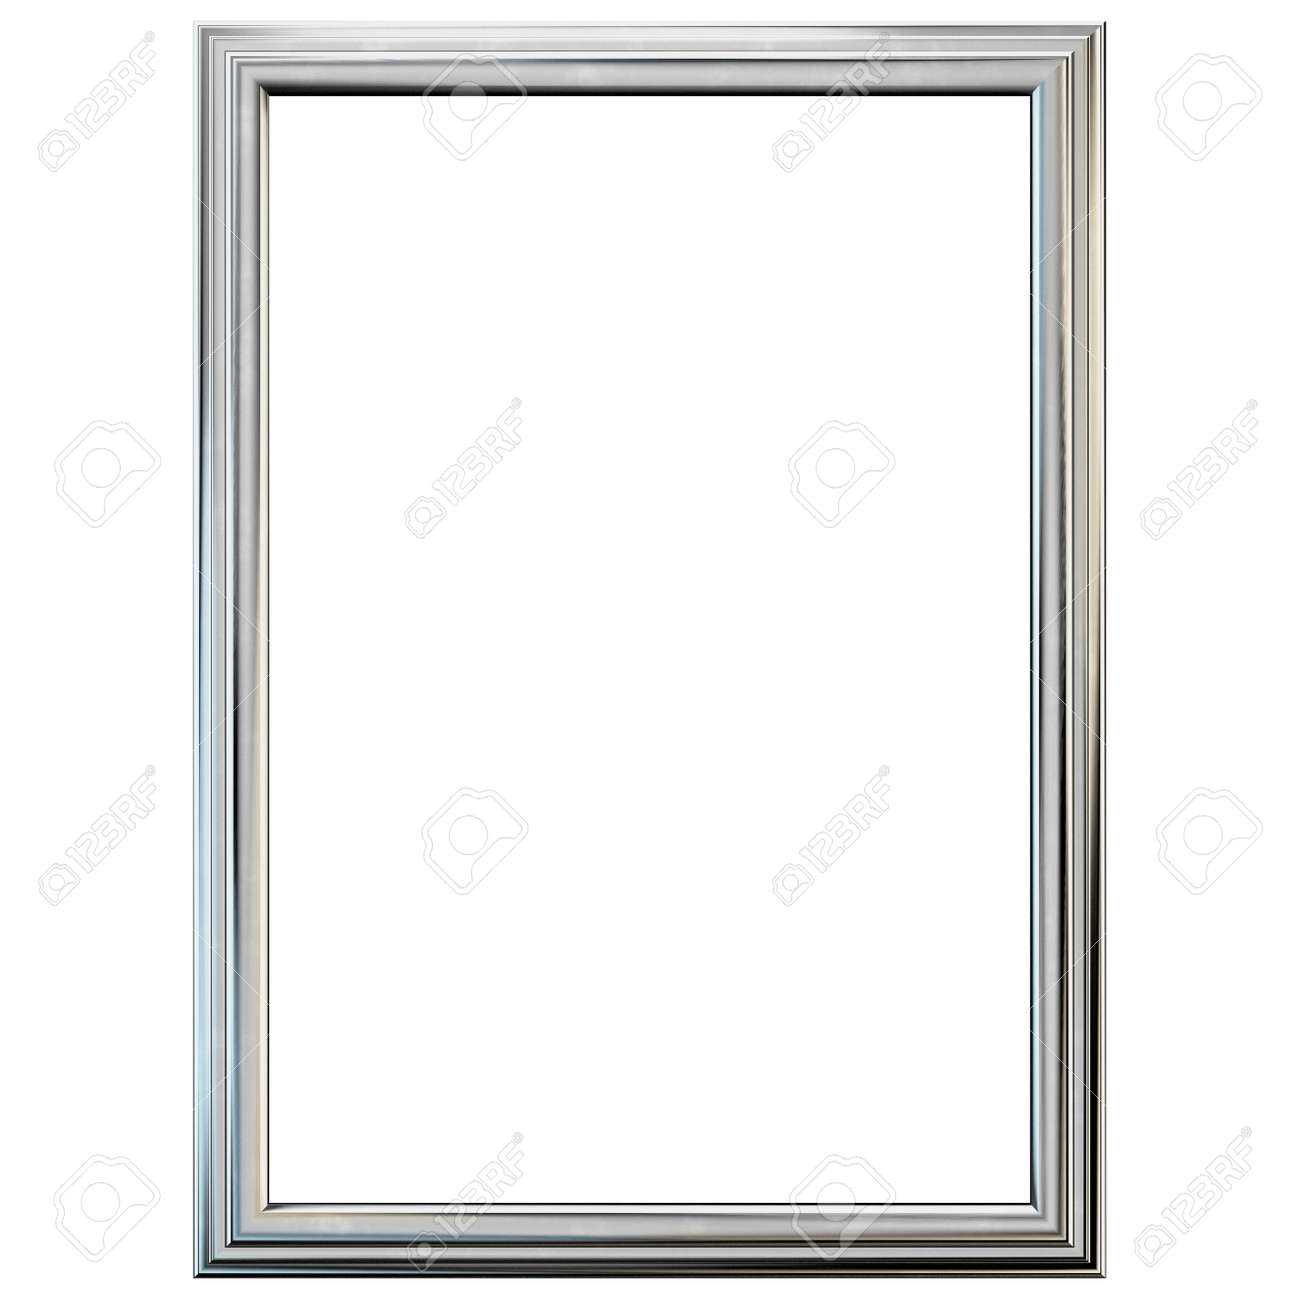 Silver Frame Isolated On White. Clipping Path Included. Stock Photo ...